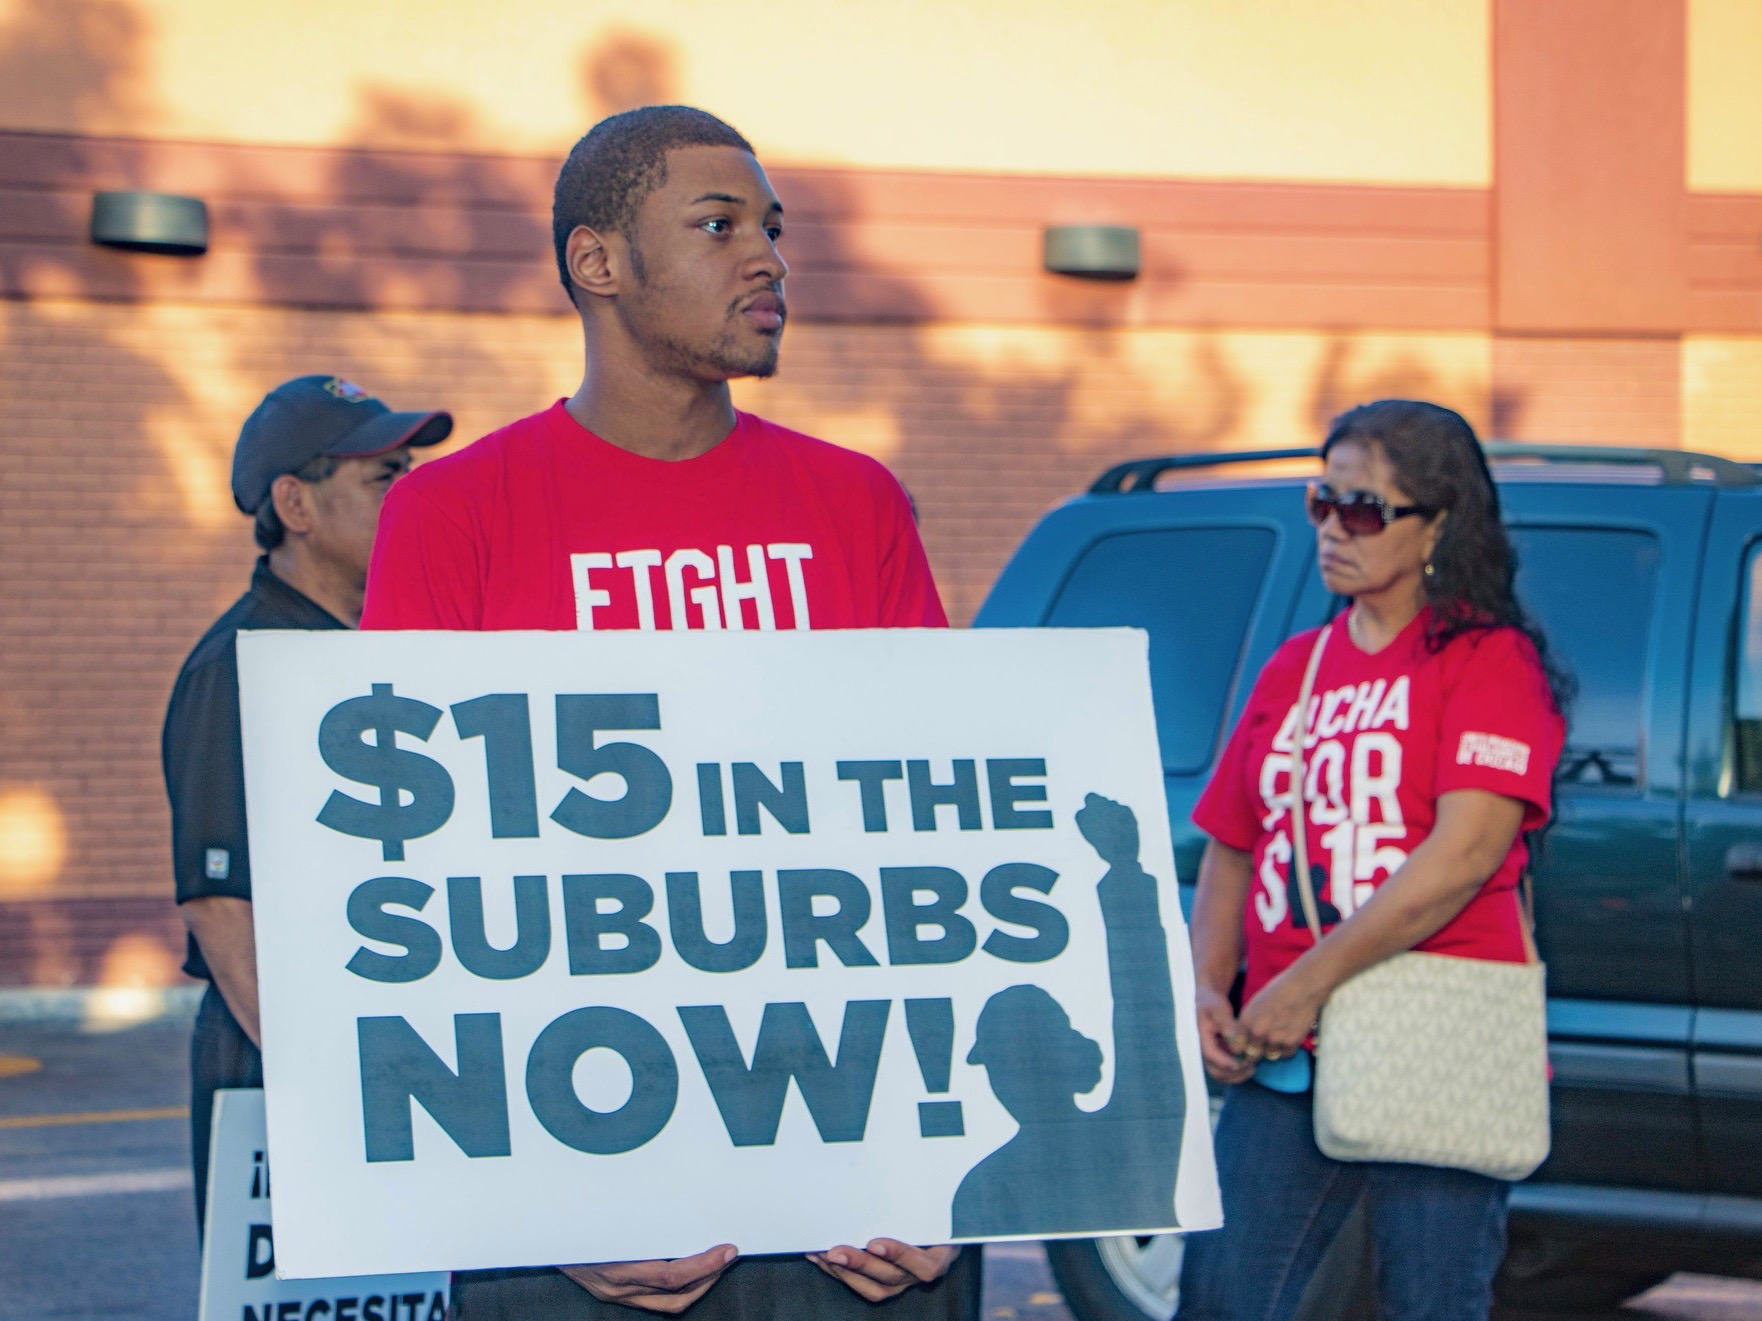 Demonstrators lobby for a $15-an-hour minimum wage in Oak Park in 2016. (Flickr/Bob Sampson)